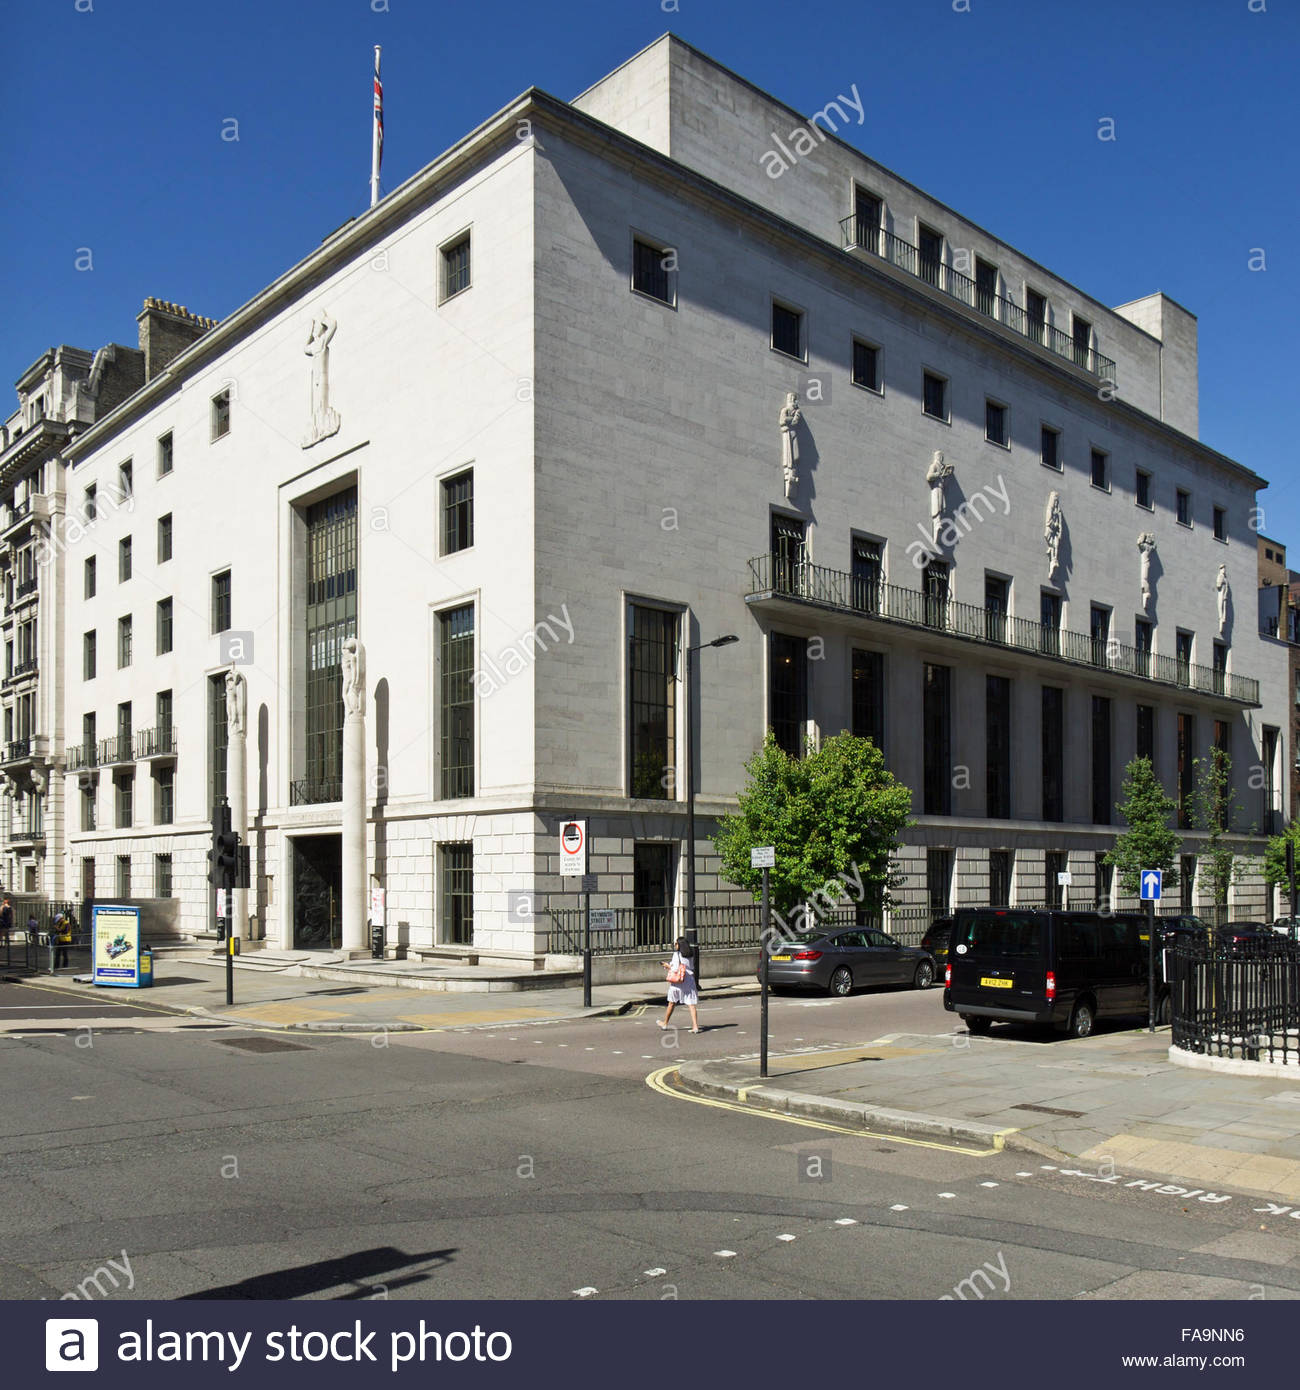 Corner elevation of 66 Portland Place, the Royal Institute of British Architects building: London. - Stock Image